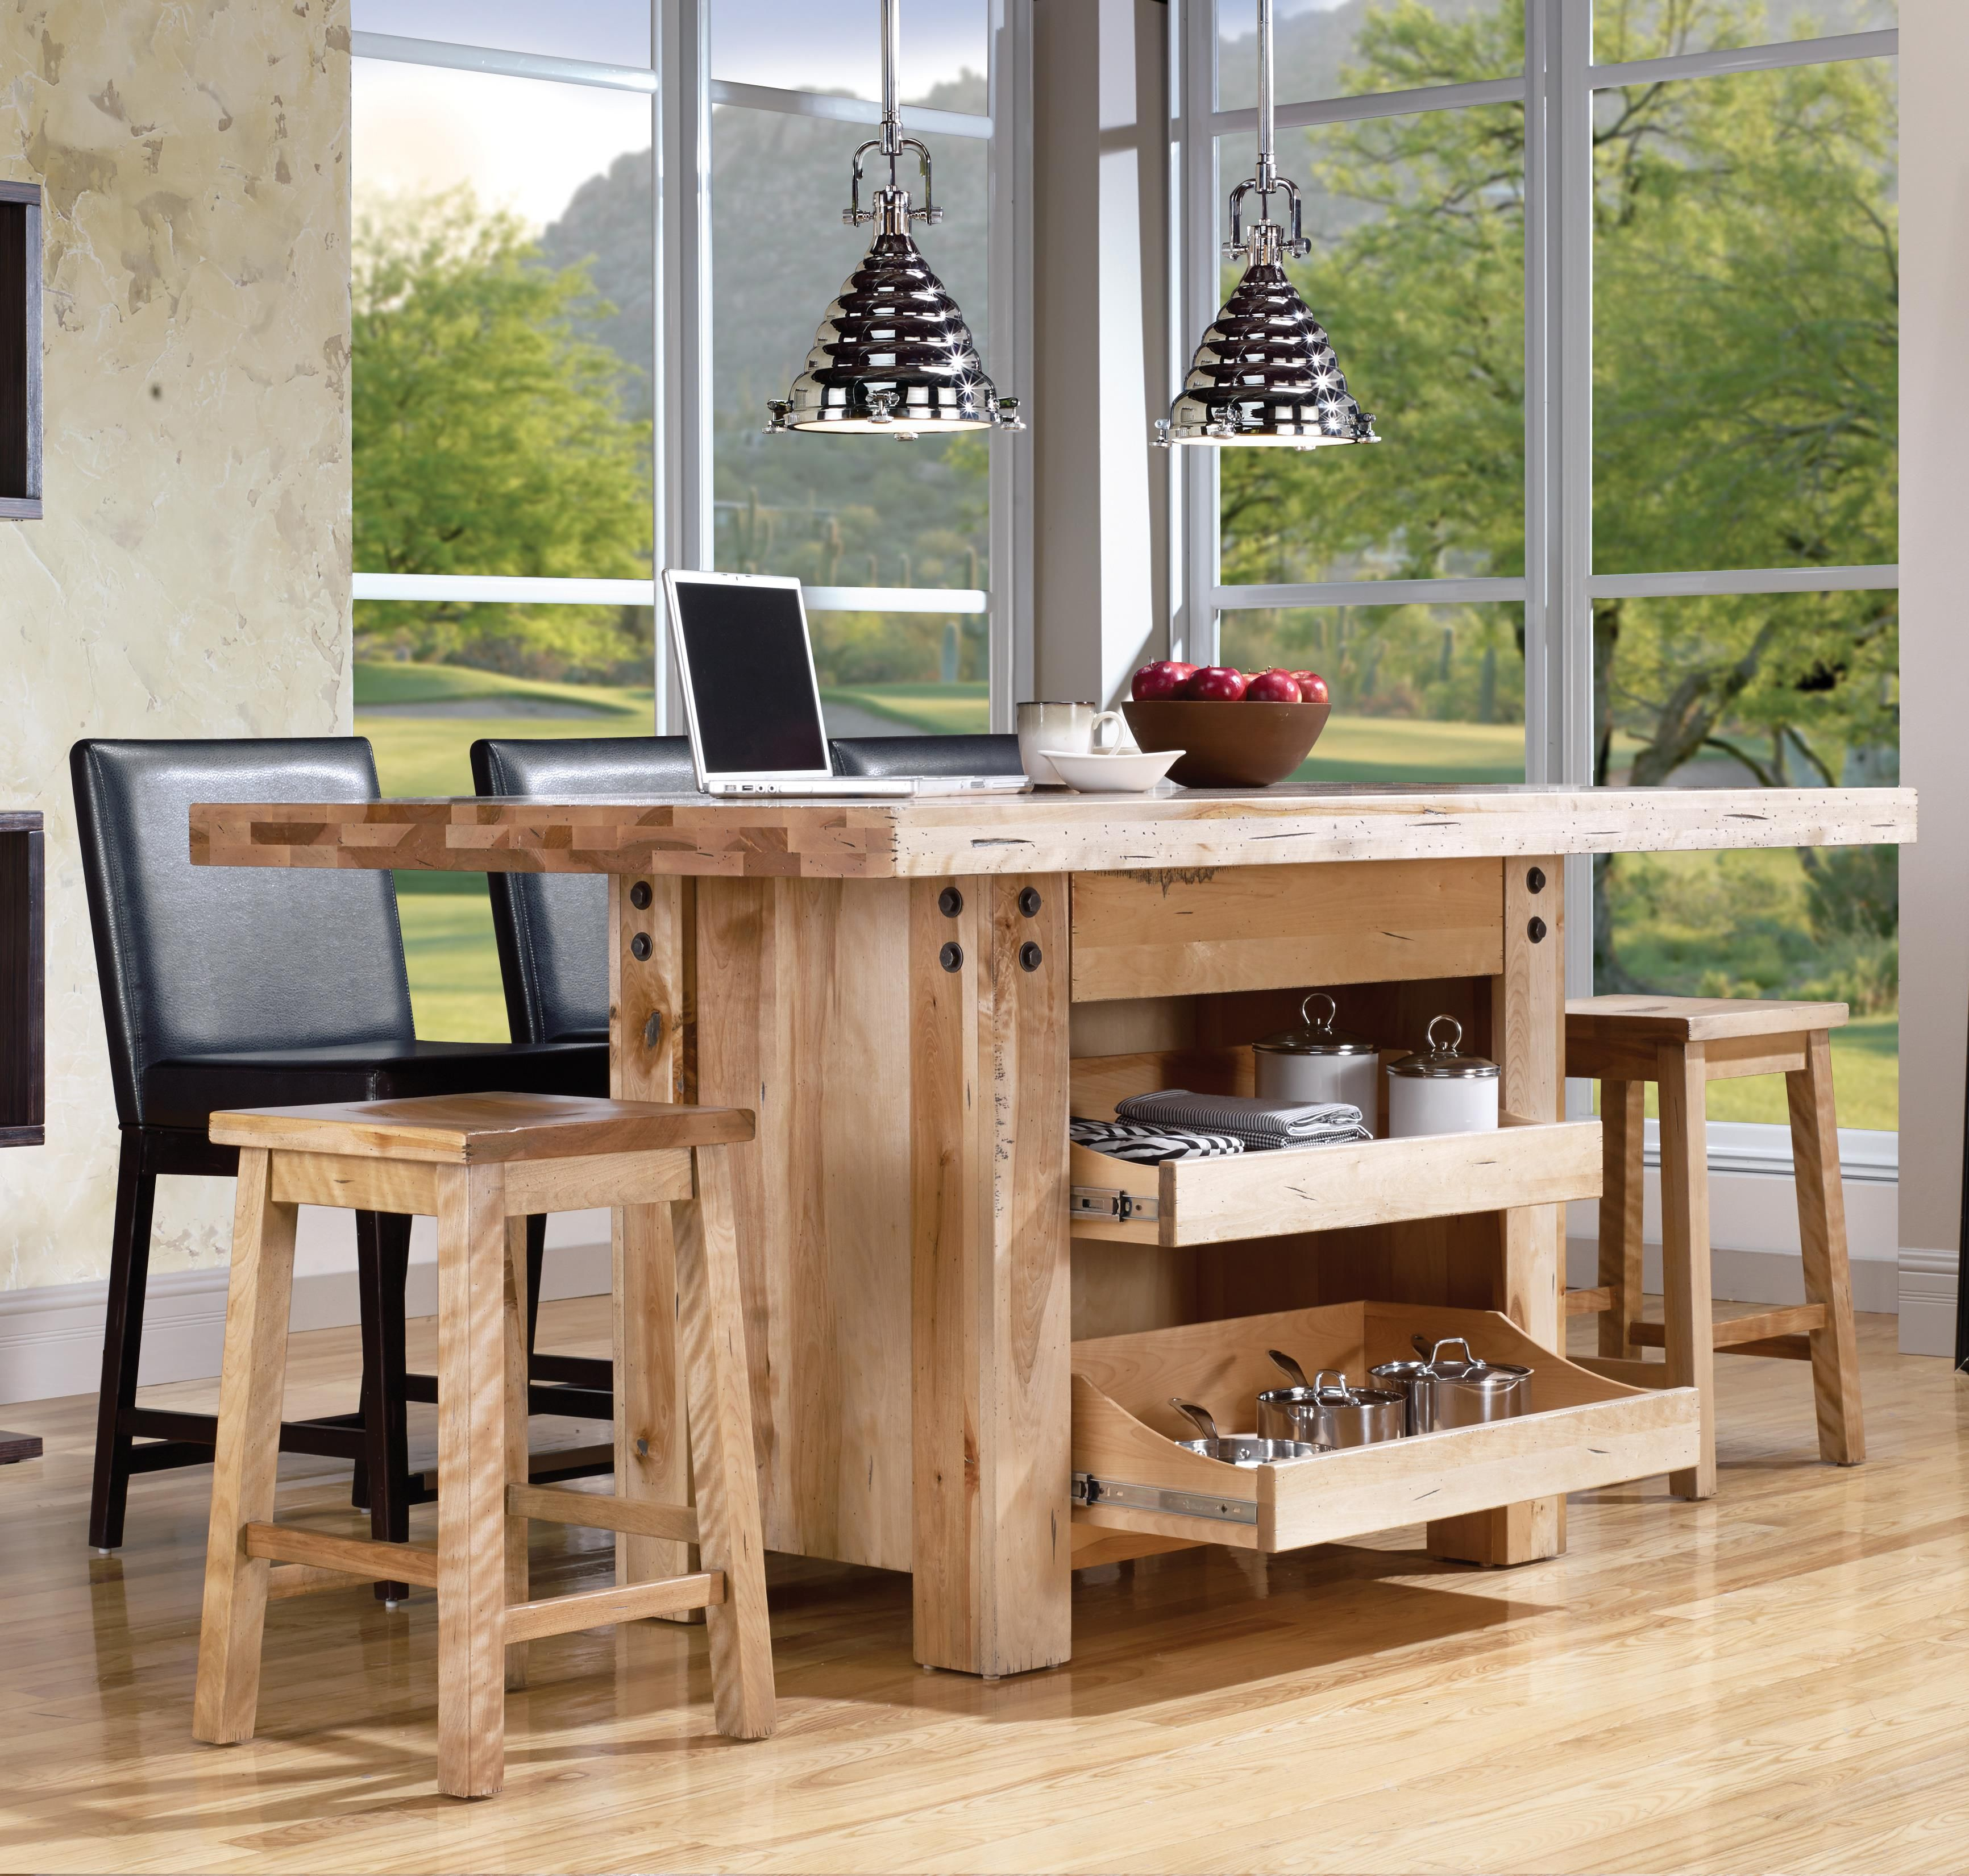 appealing kitchen center island tables | A rustic finish and decorative metal rivets add industrial ...